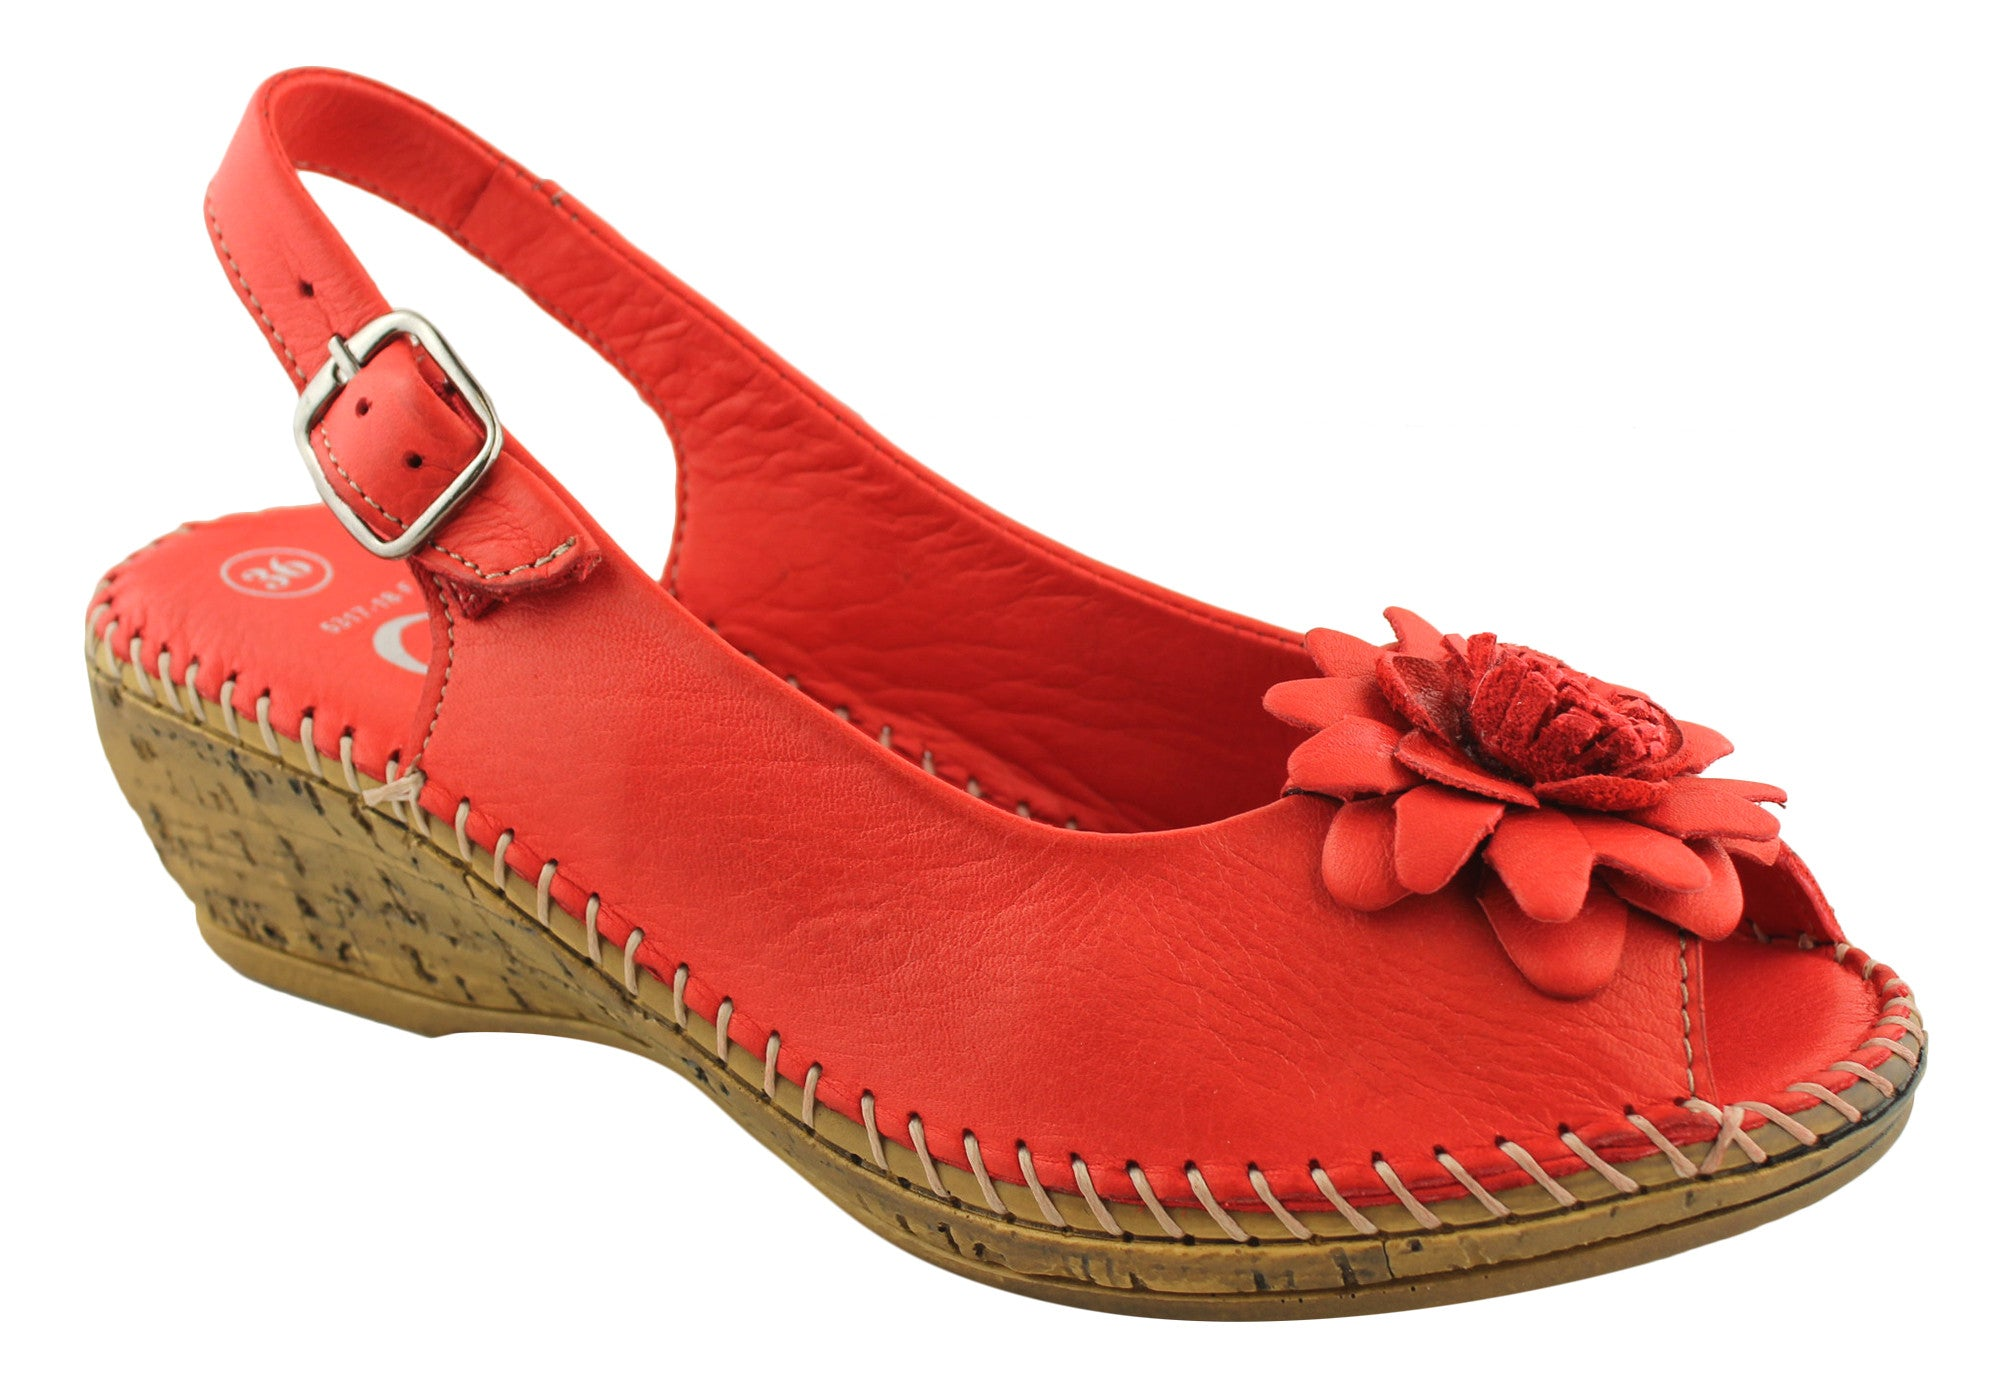 Cabello Comfort Womens Soft Leather Handmade Sandals